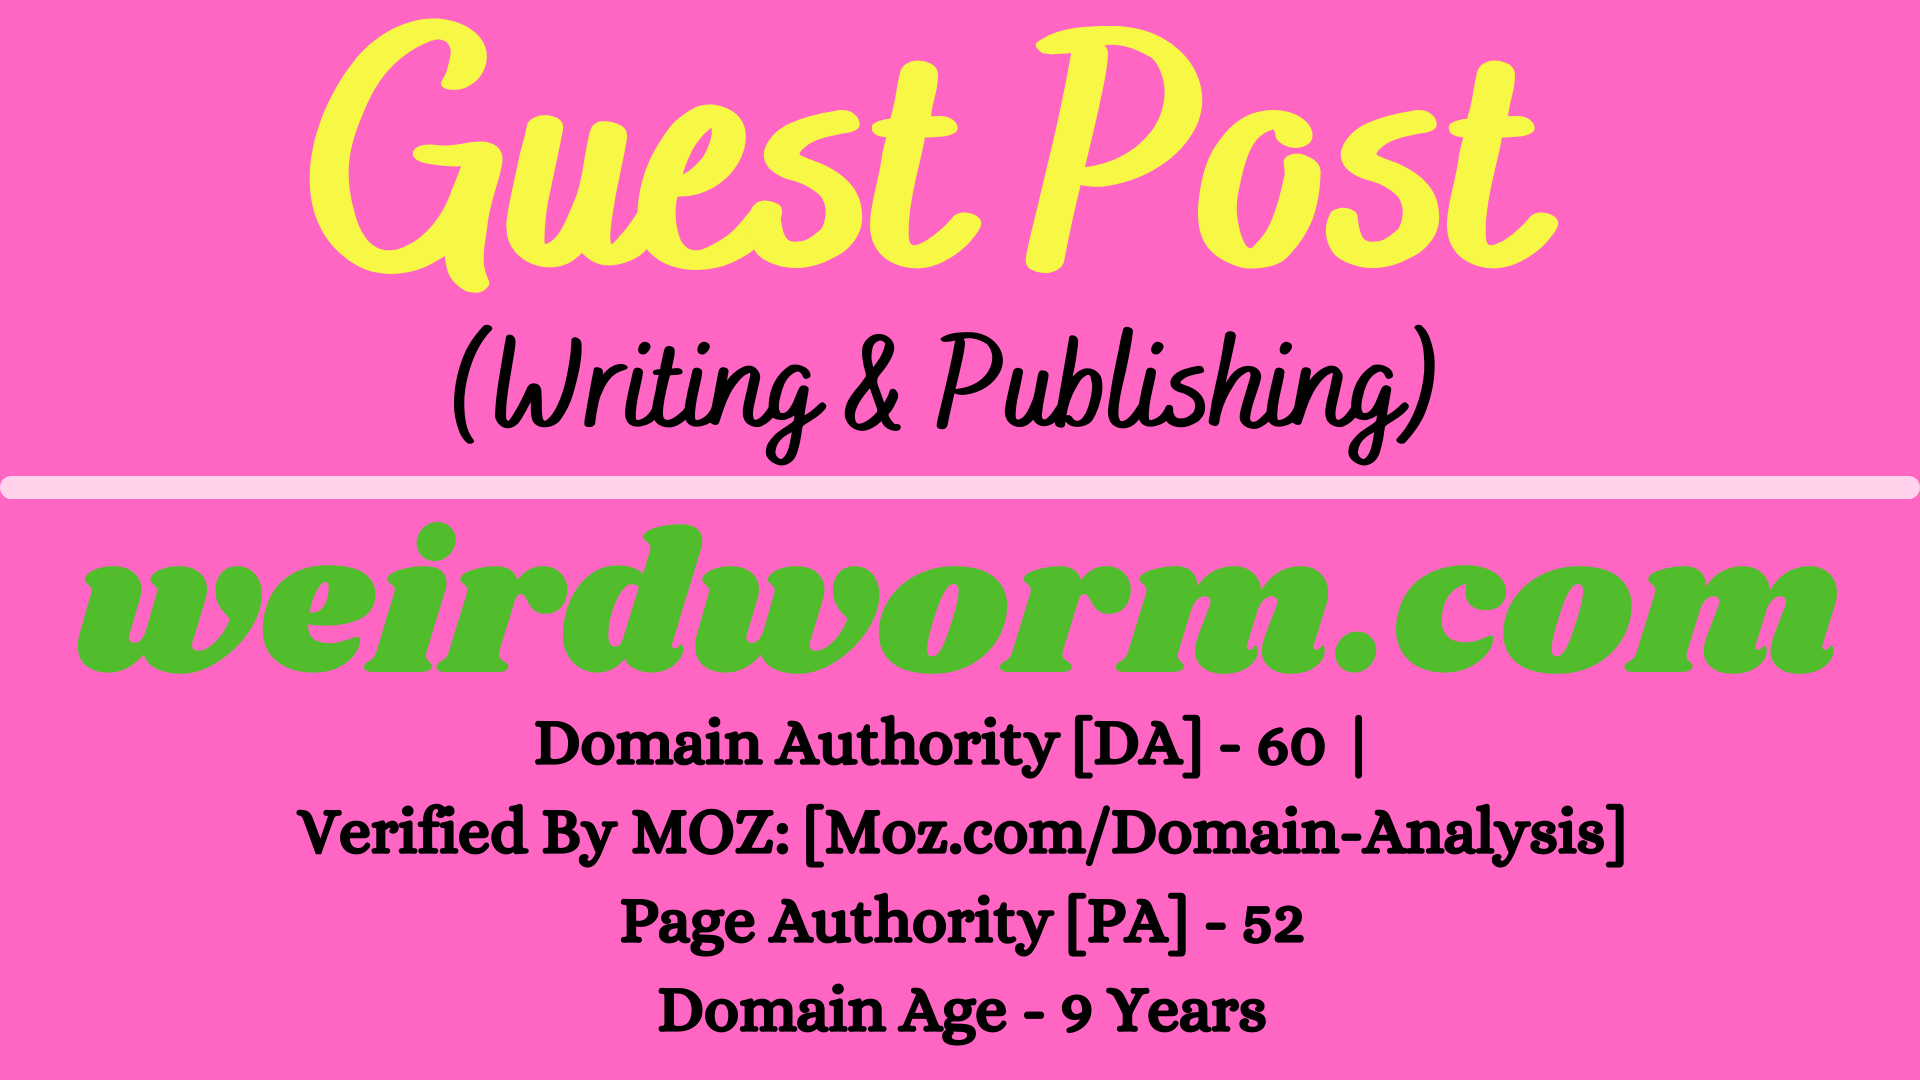 I will provide Guest Post on weirdworm. com